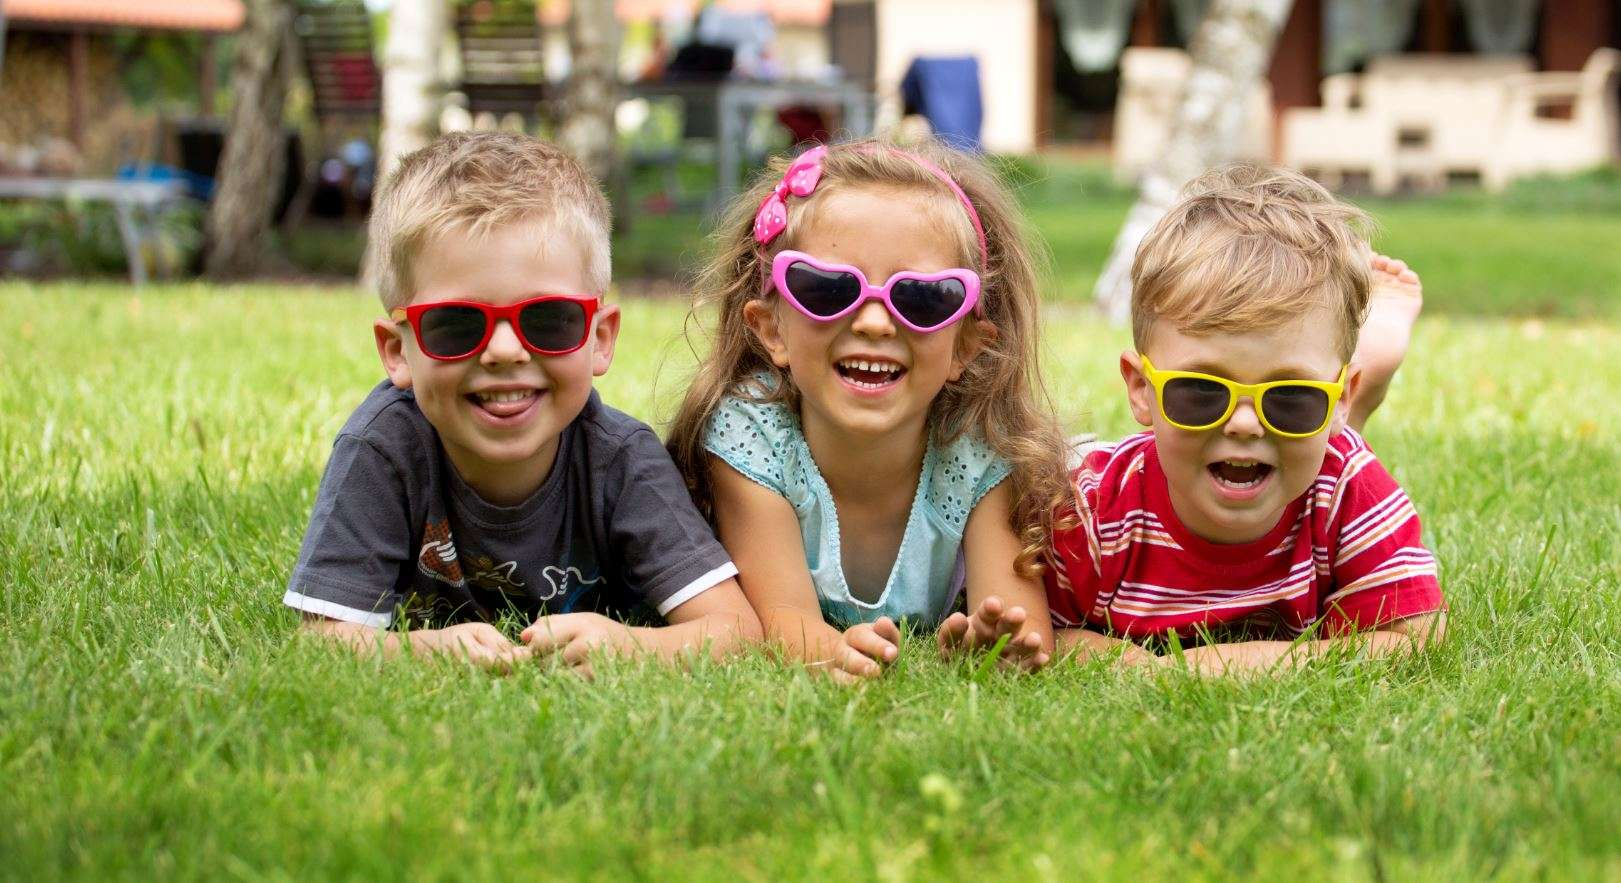 Fun in the Sun - Keeping Your Kids Protected From Sunburns